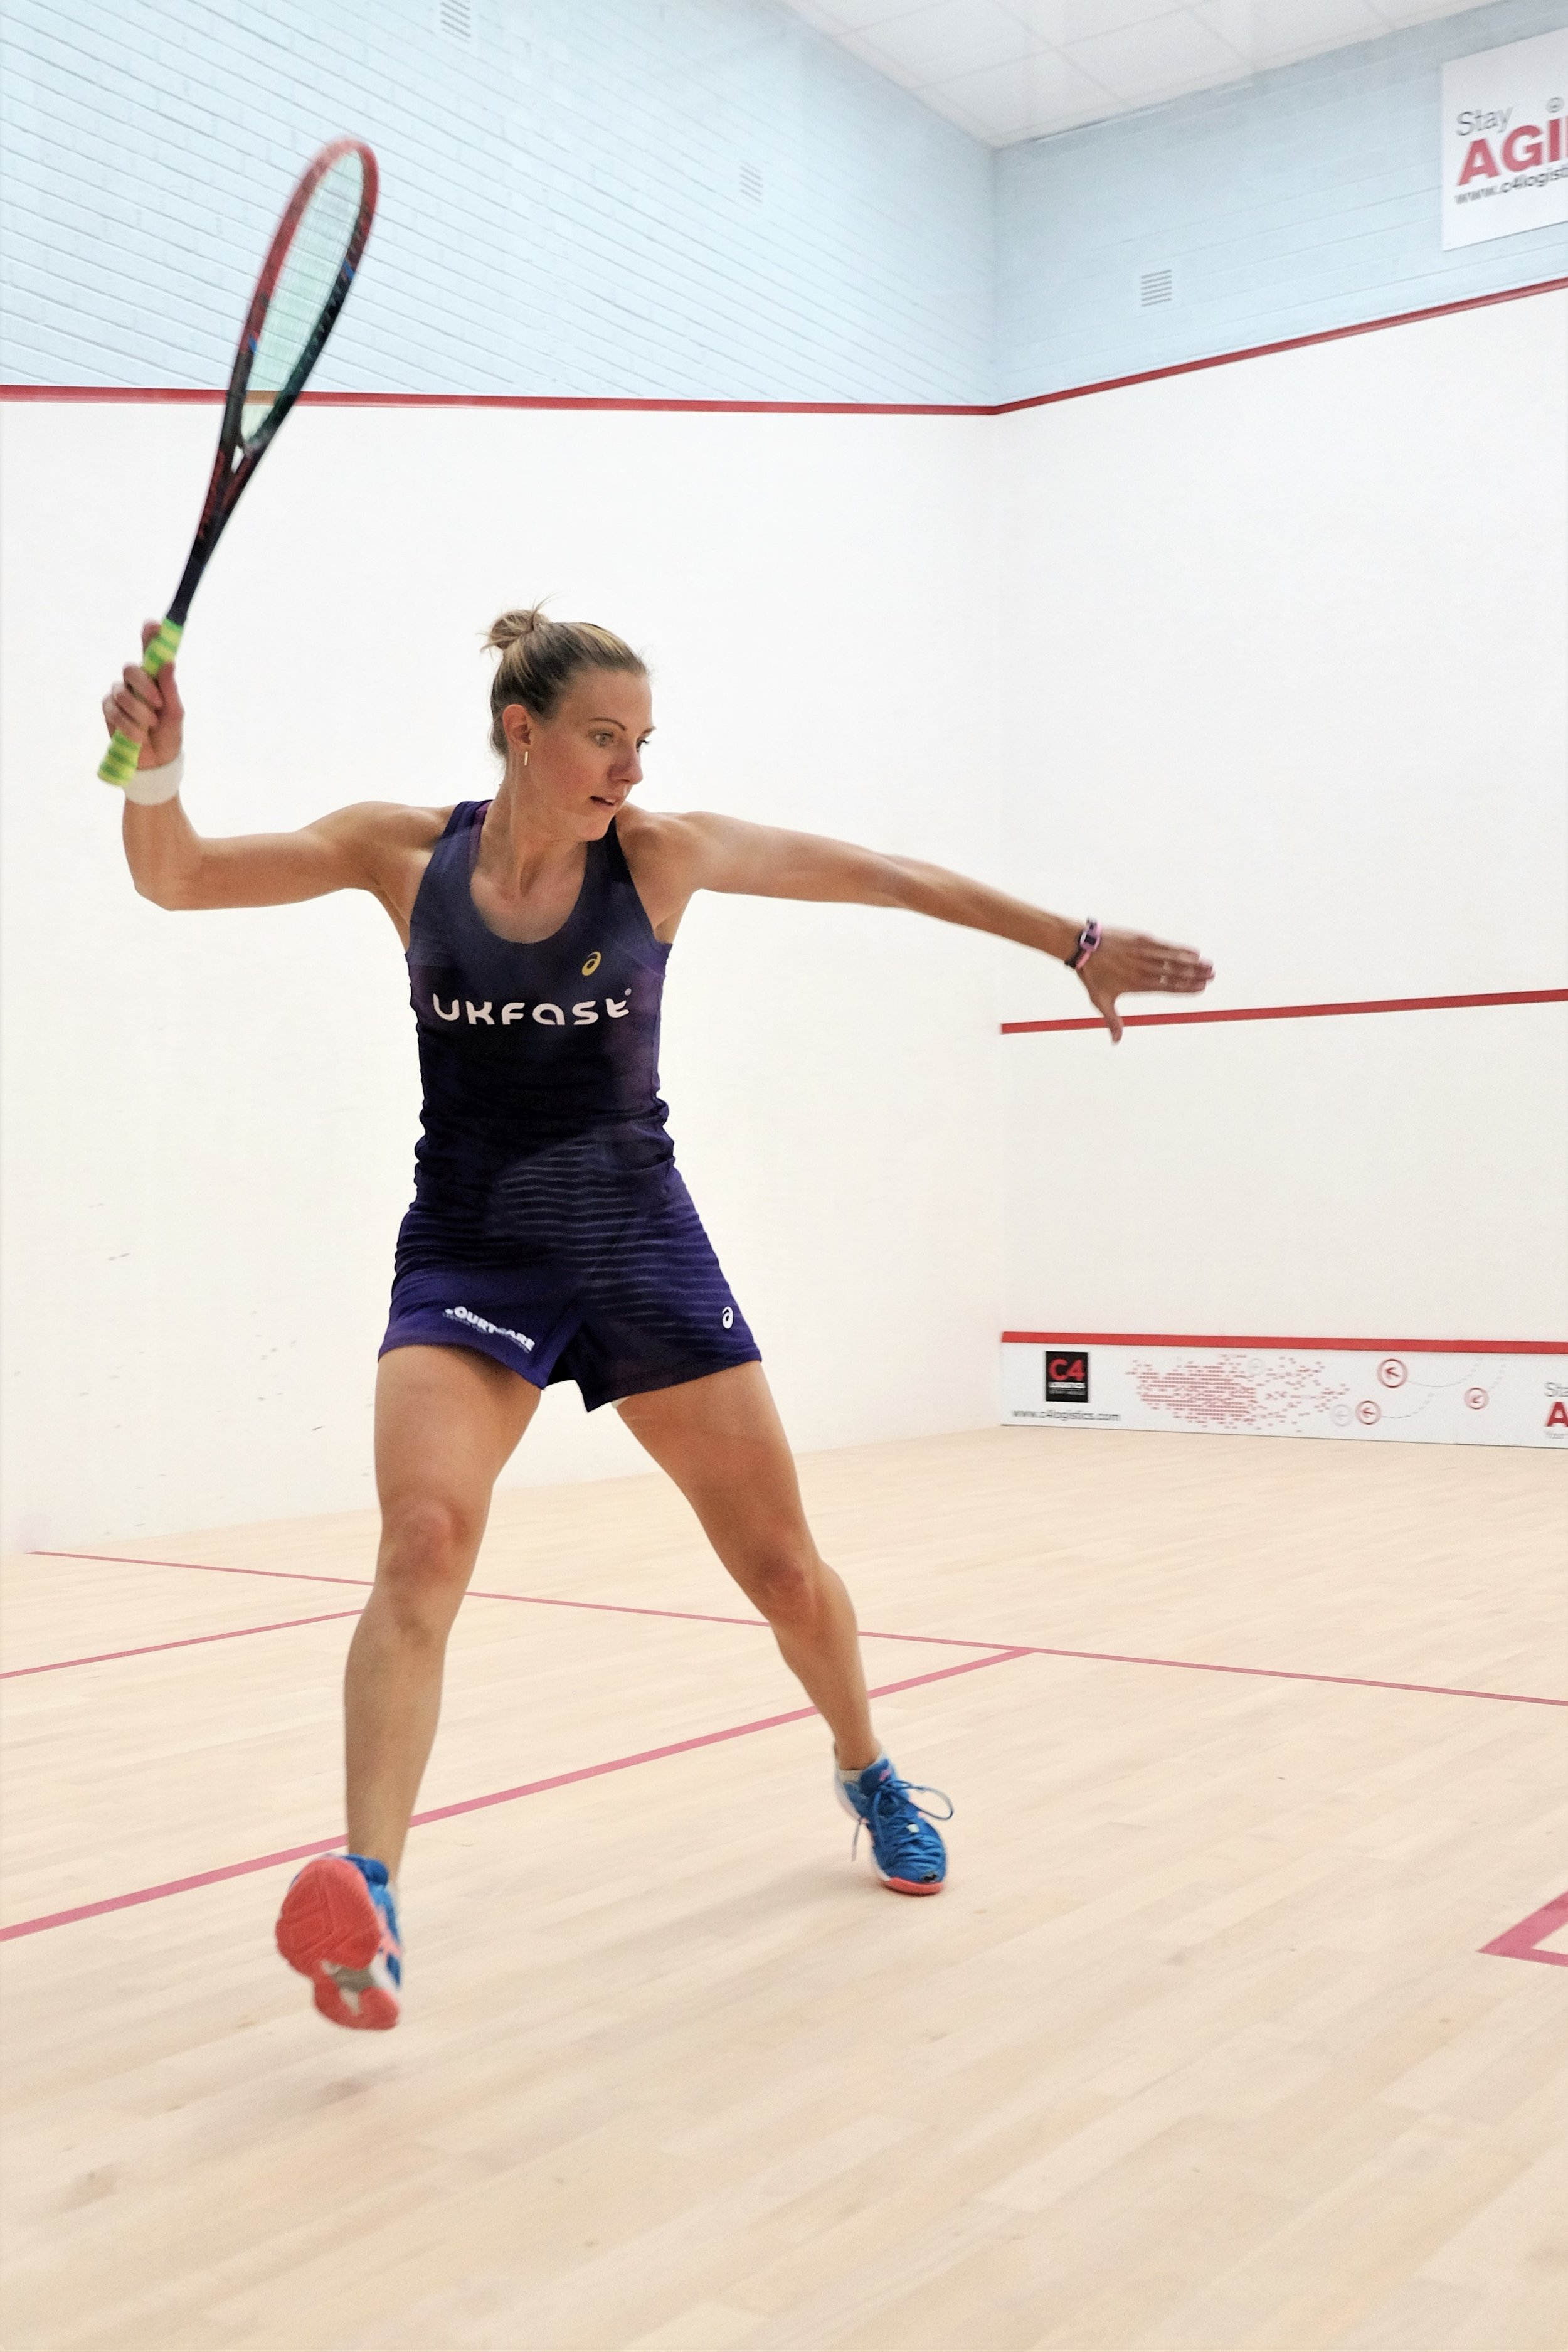 Leamington Spa Event photographer - sports event photography squash professional player warwickshire.JPG